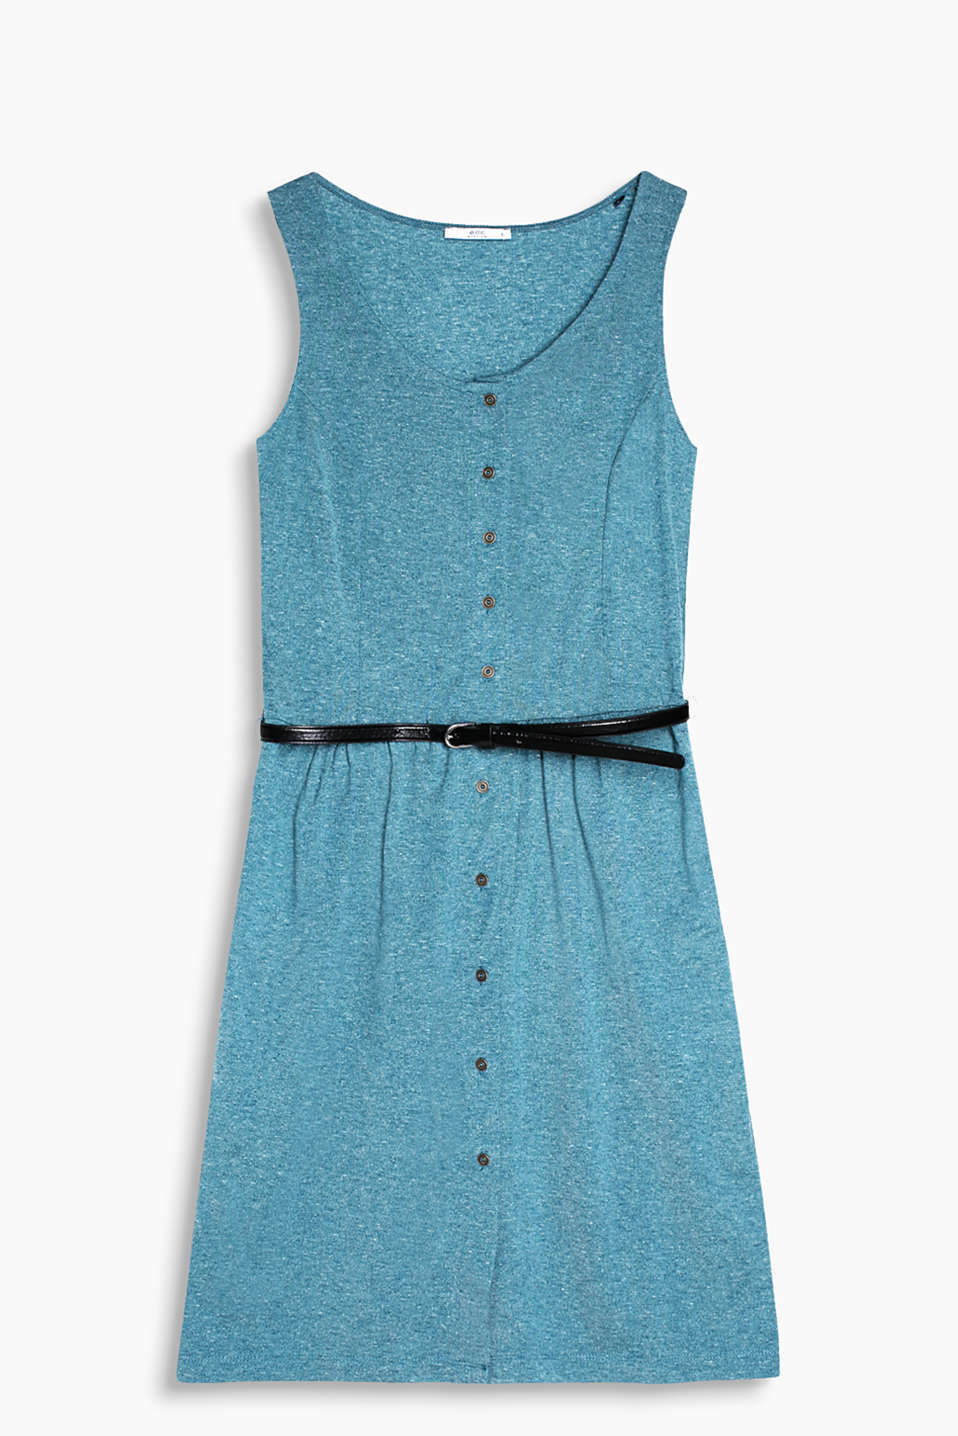 Jersey dress in a melange look with a belt and a full-length button placket